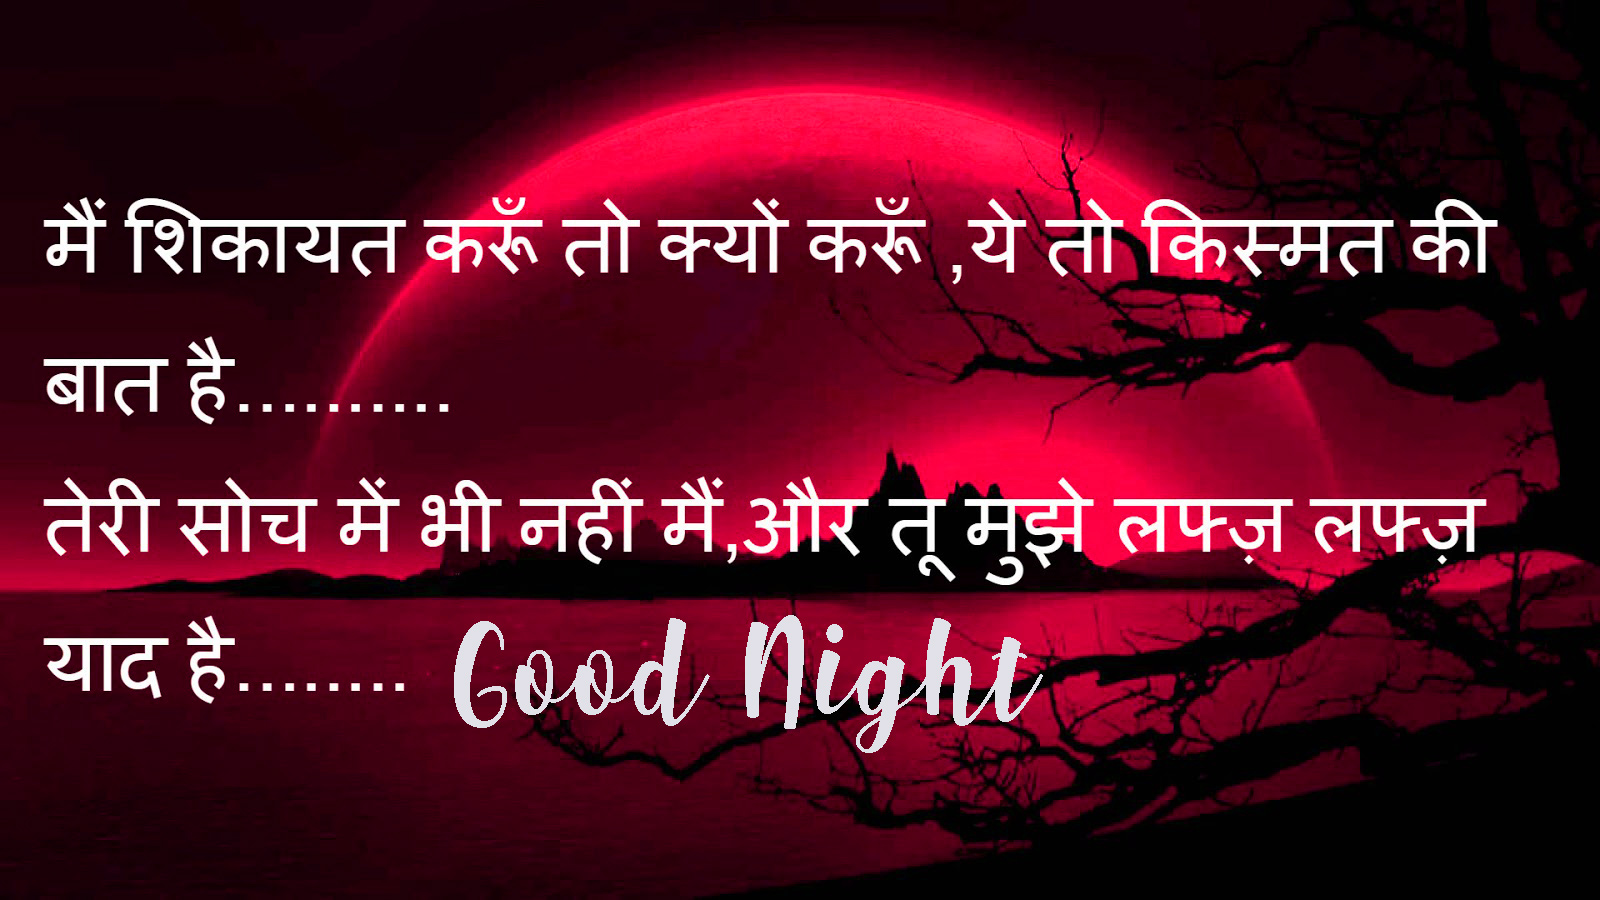 35Hindi English Love Sad Romantic shayari good night images Photo pictures Pics HD